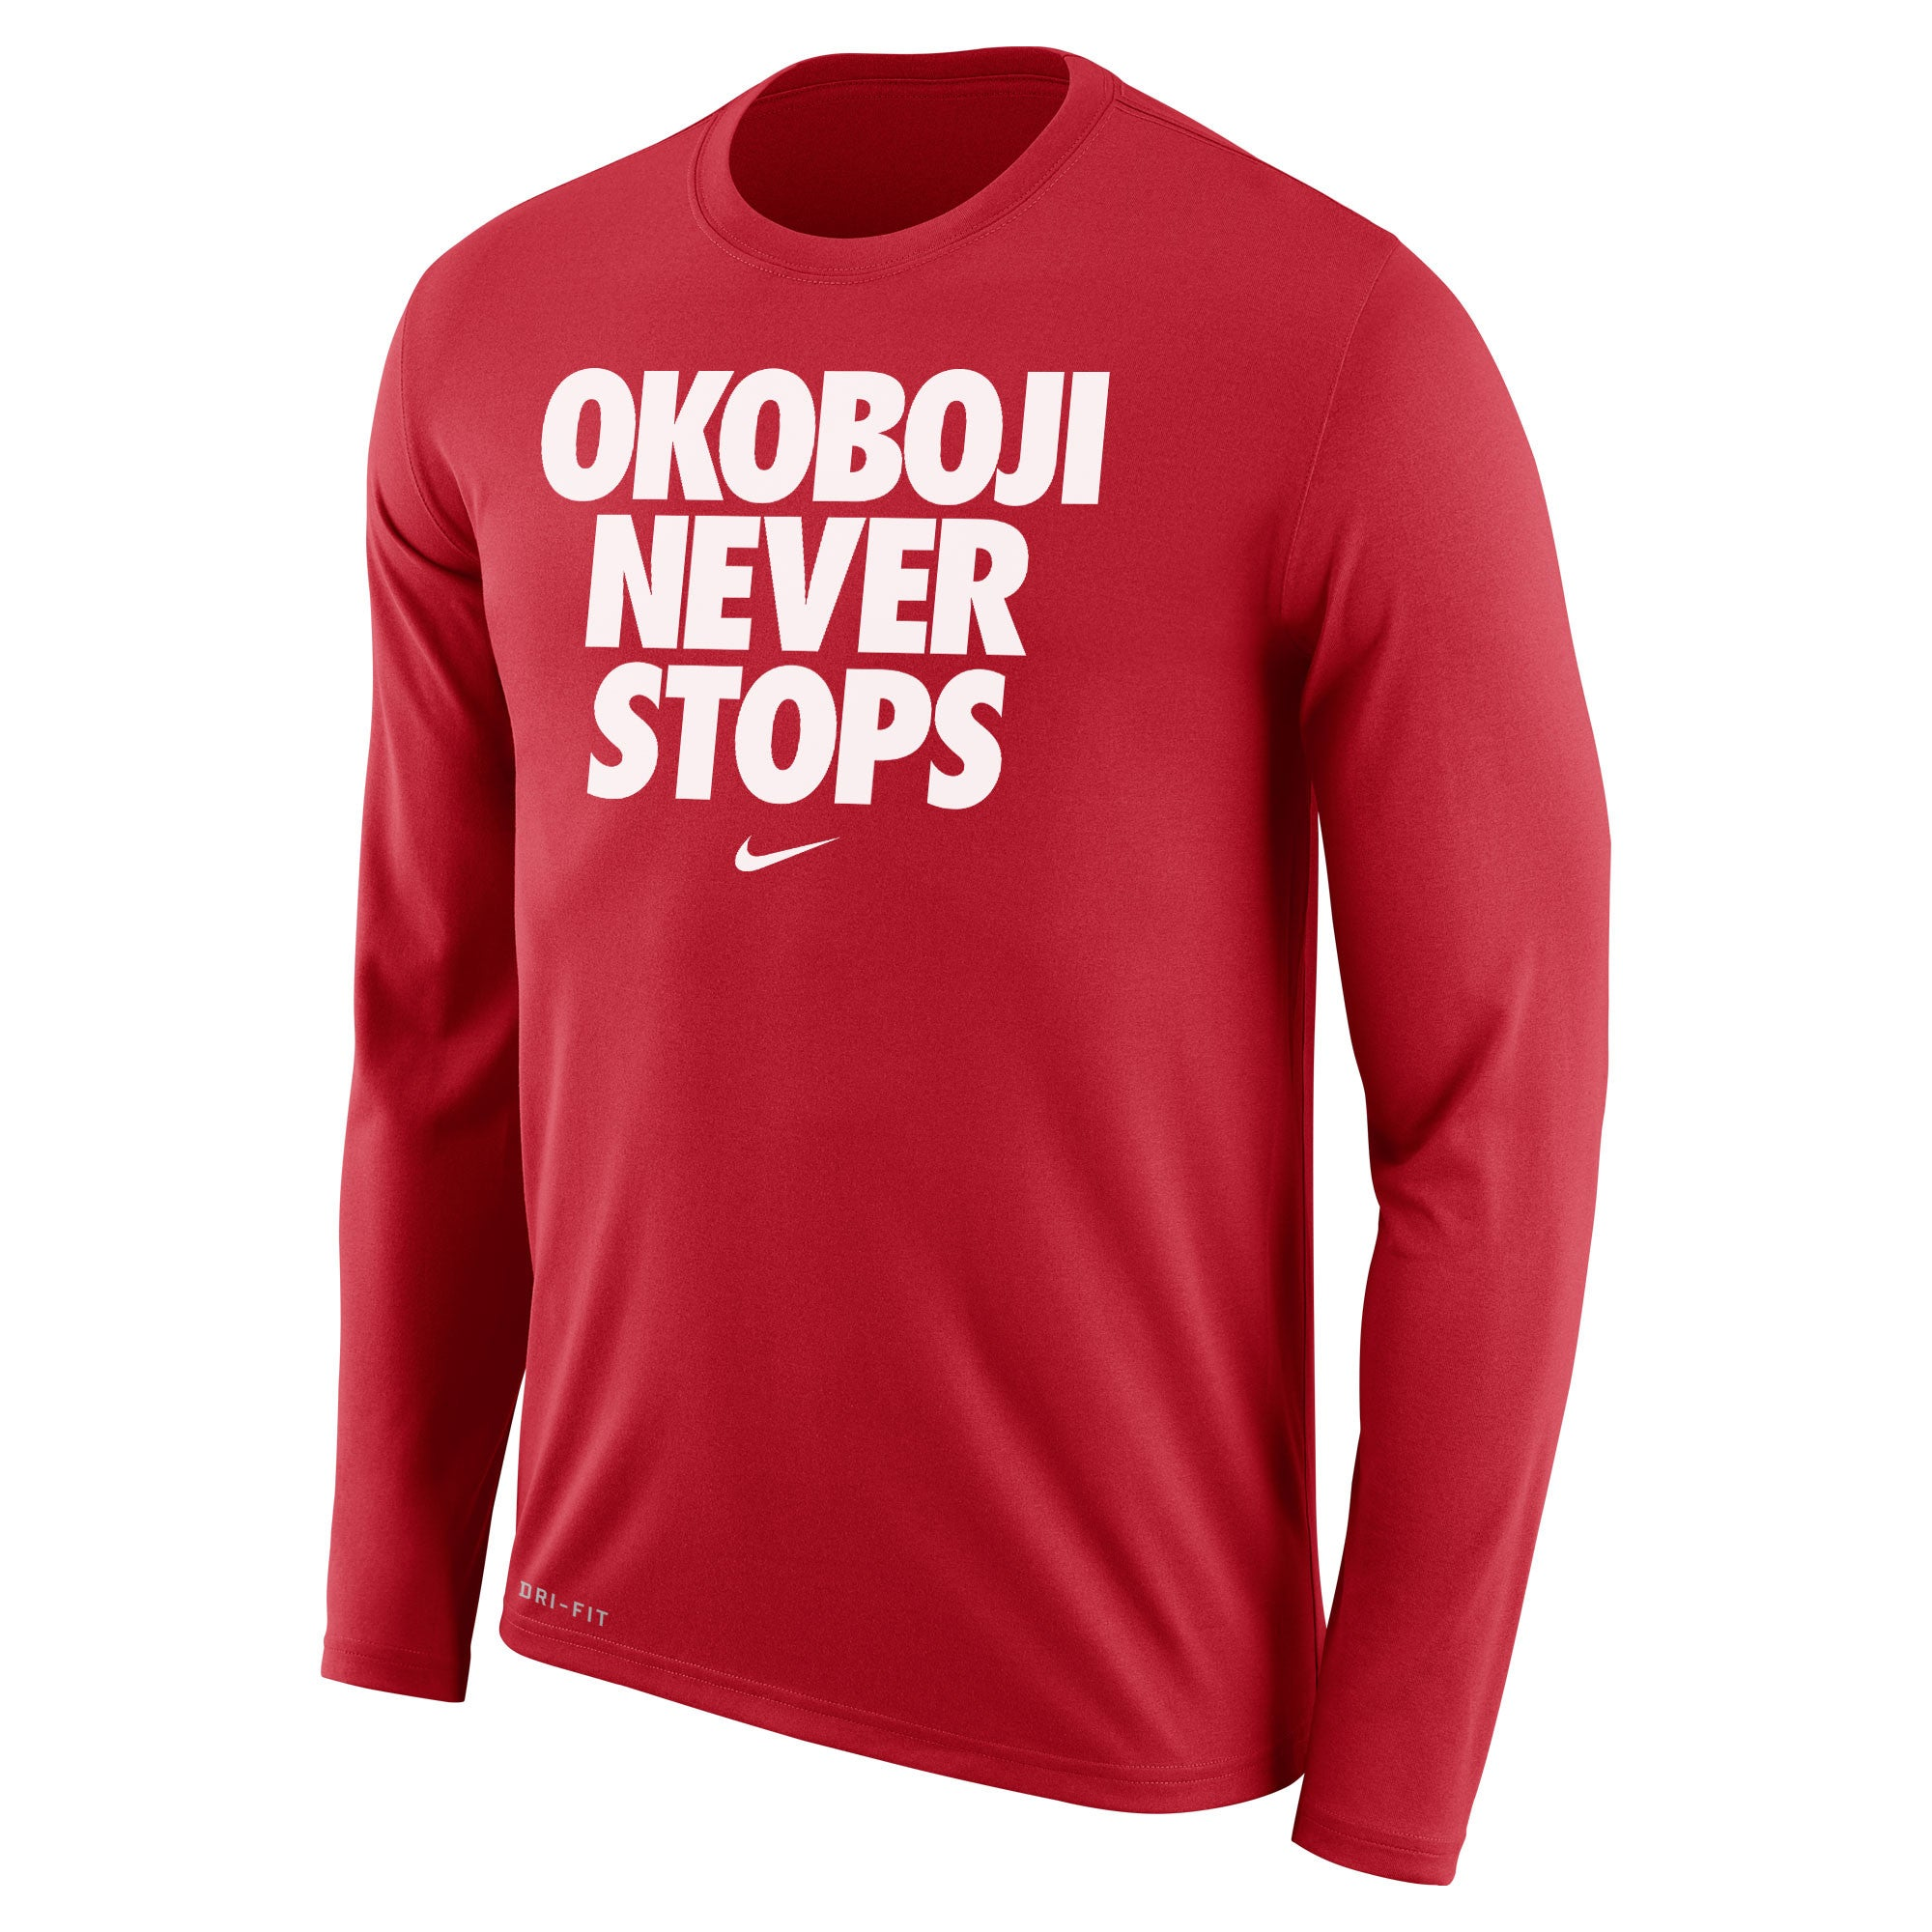 OKOBOJI NEVER STOPS Long-sleevedTee (Red)